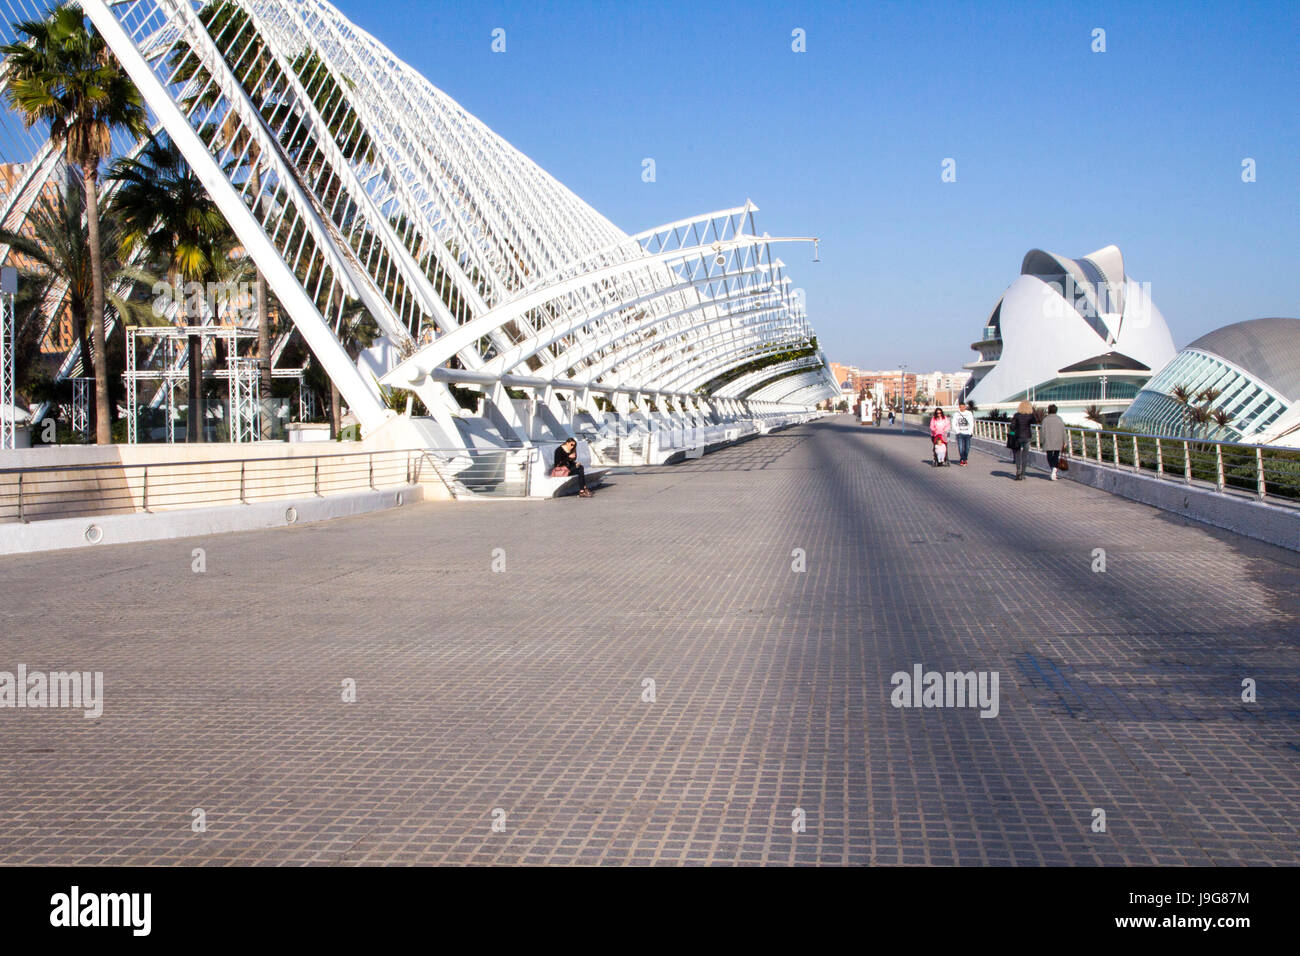 The City of Arts and Sciences is a futuristic cultural and entertainment complex in Valencia, designed principally - Stock Image